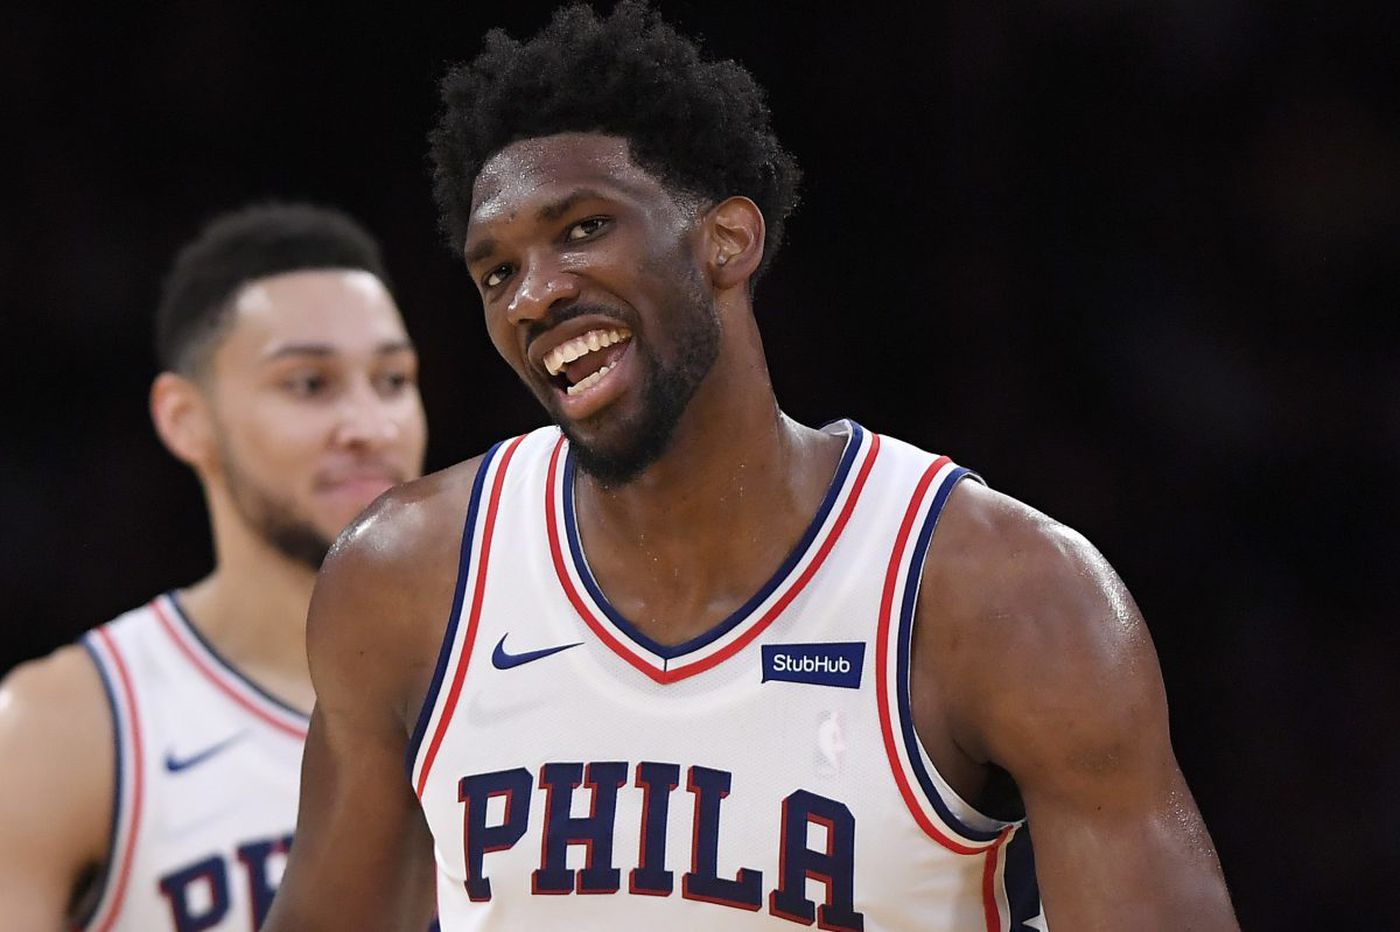 Sixers-Lakers: Joel Embiid's career night, and other quick thoughts from Philly's 115-109 win